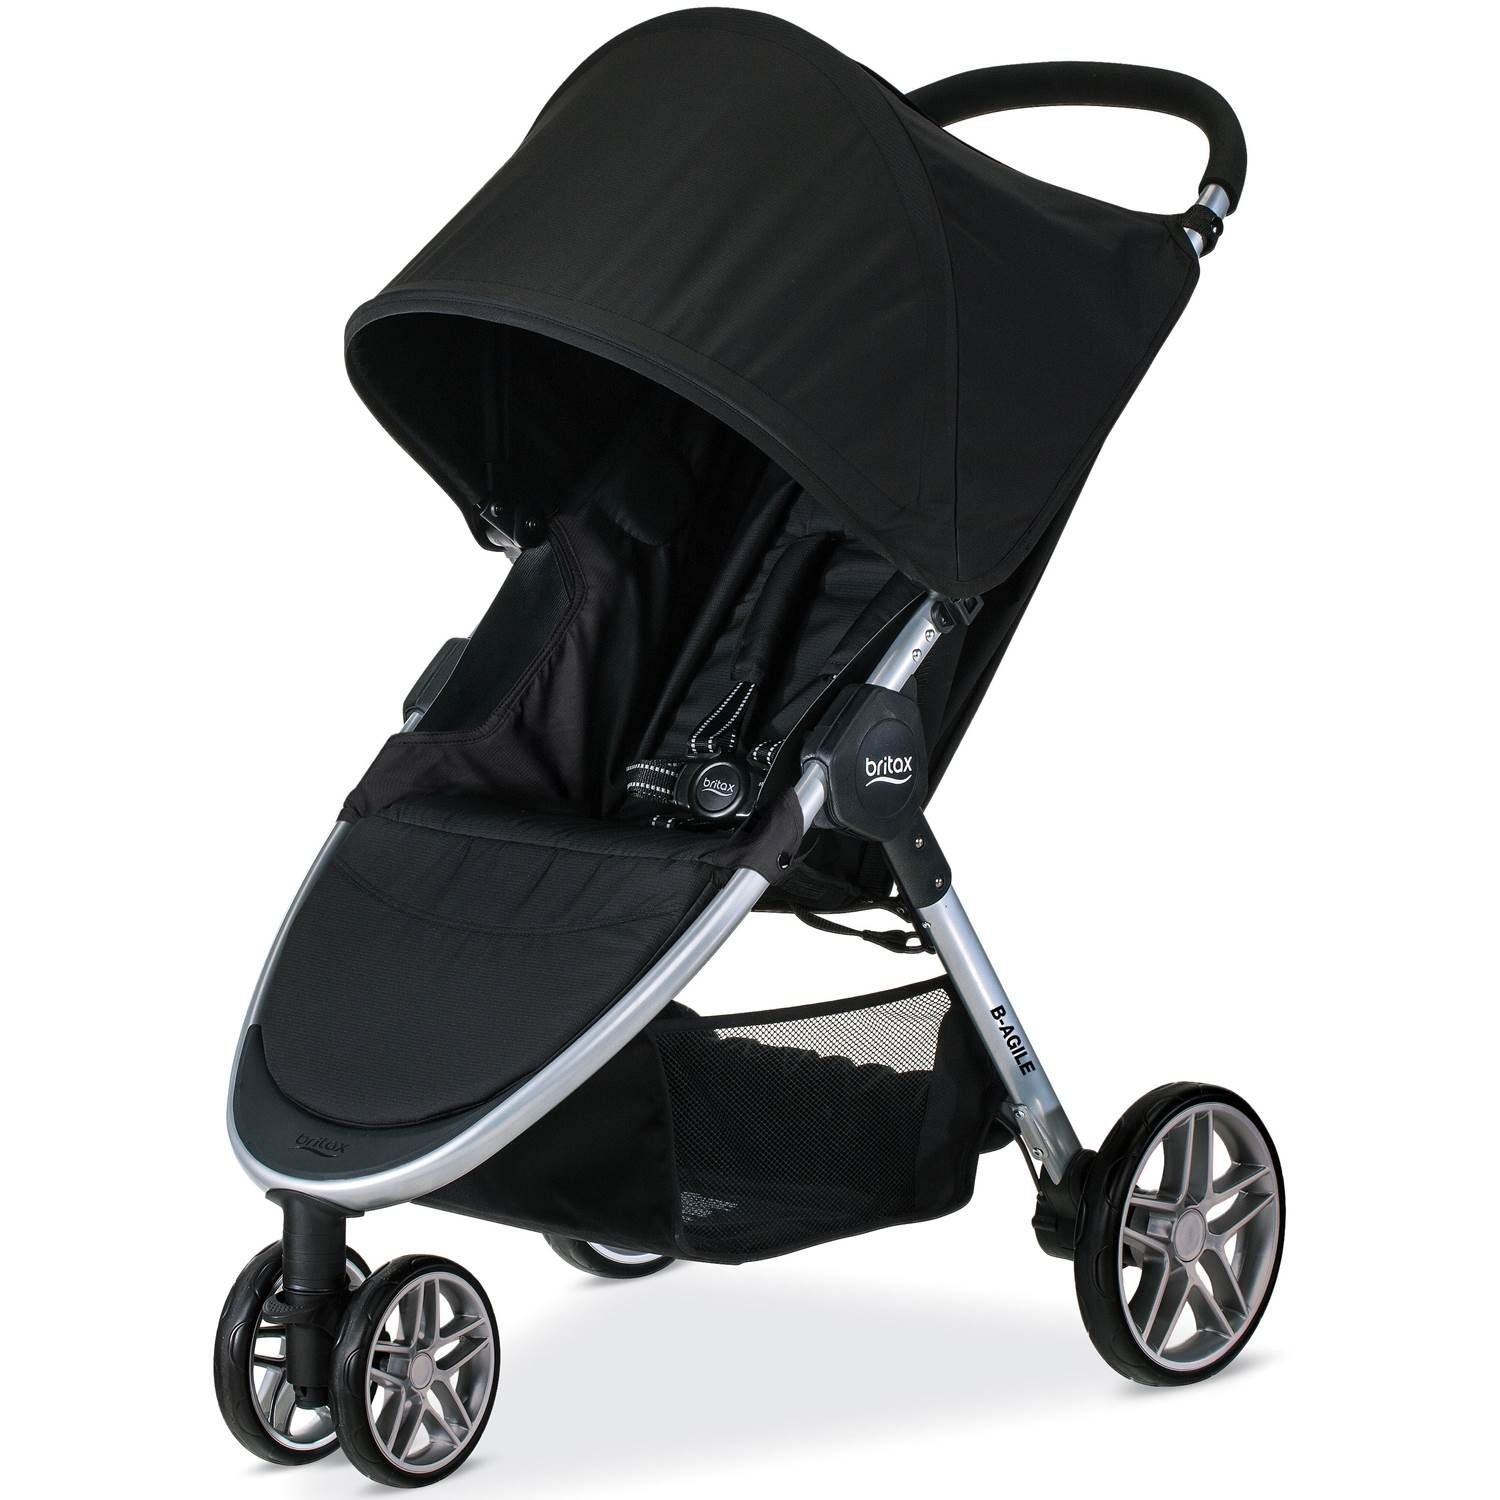 140 reference of britax stroller board review in 2020